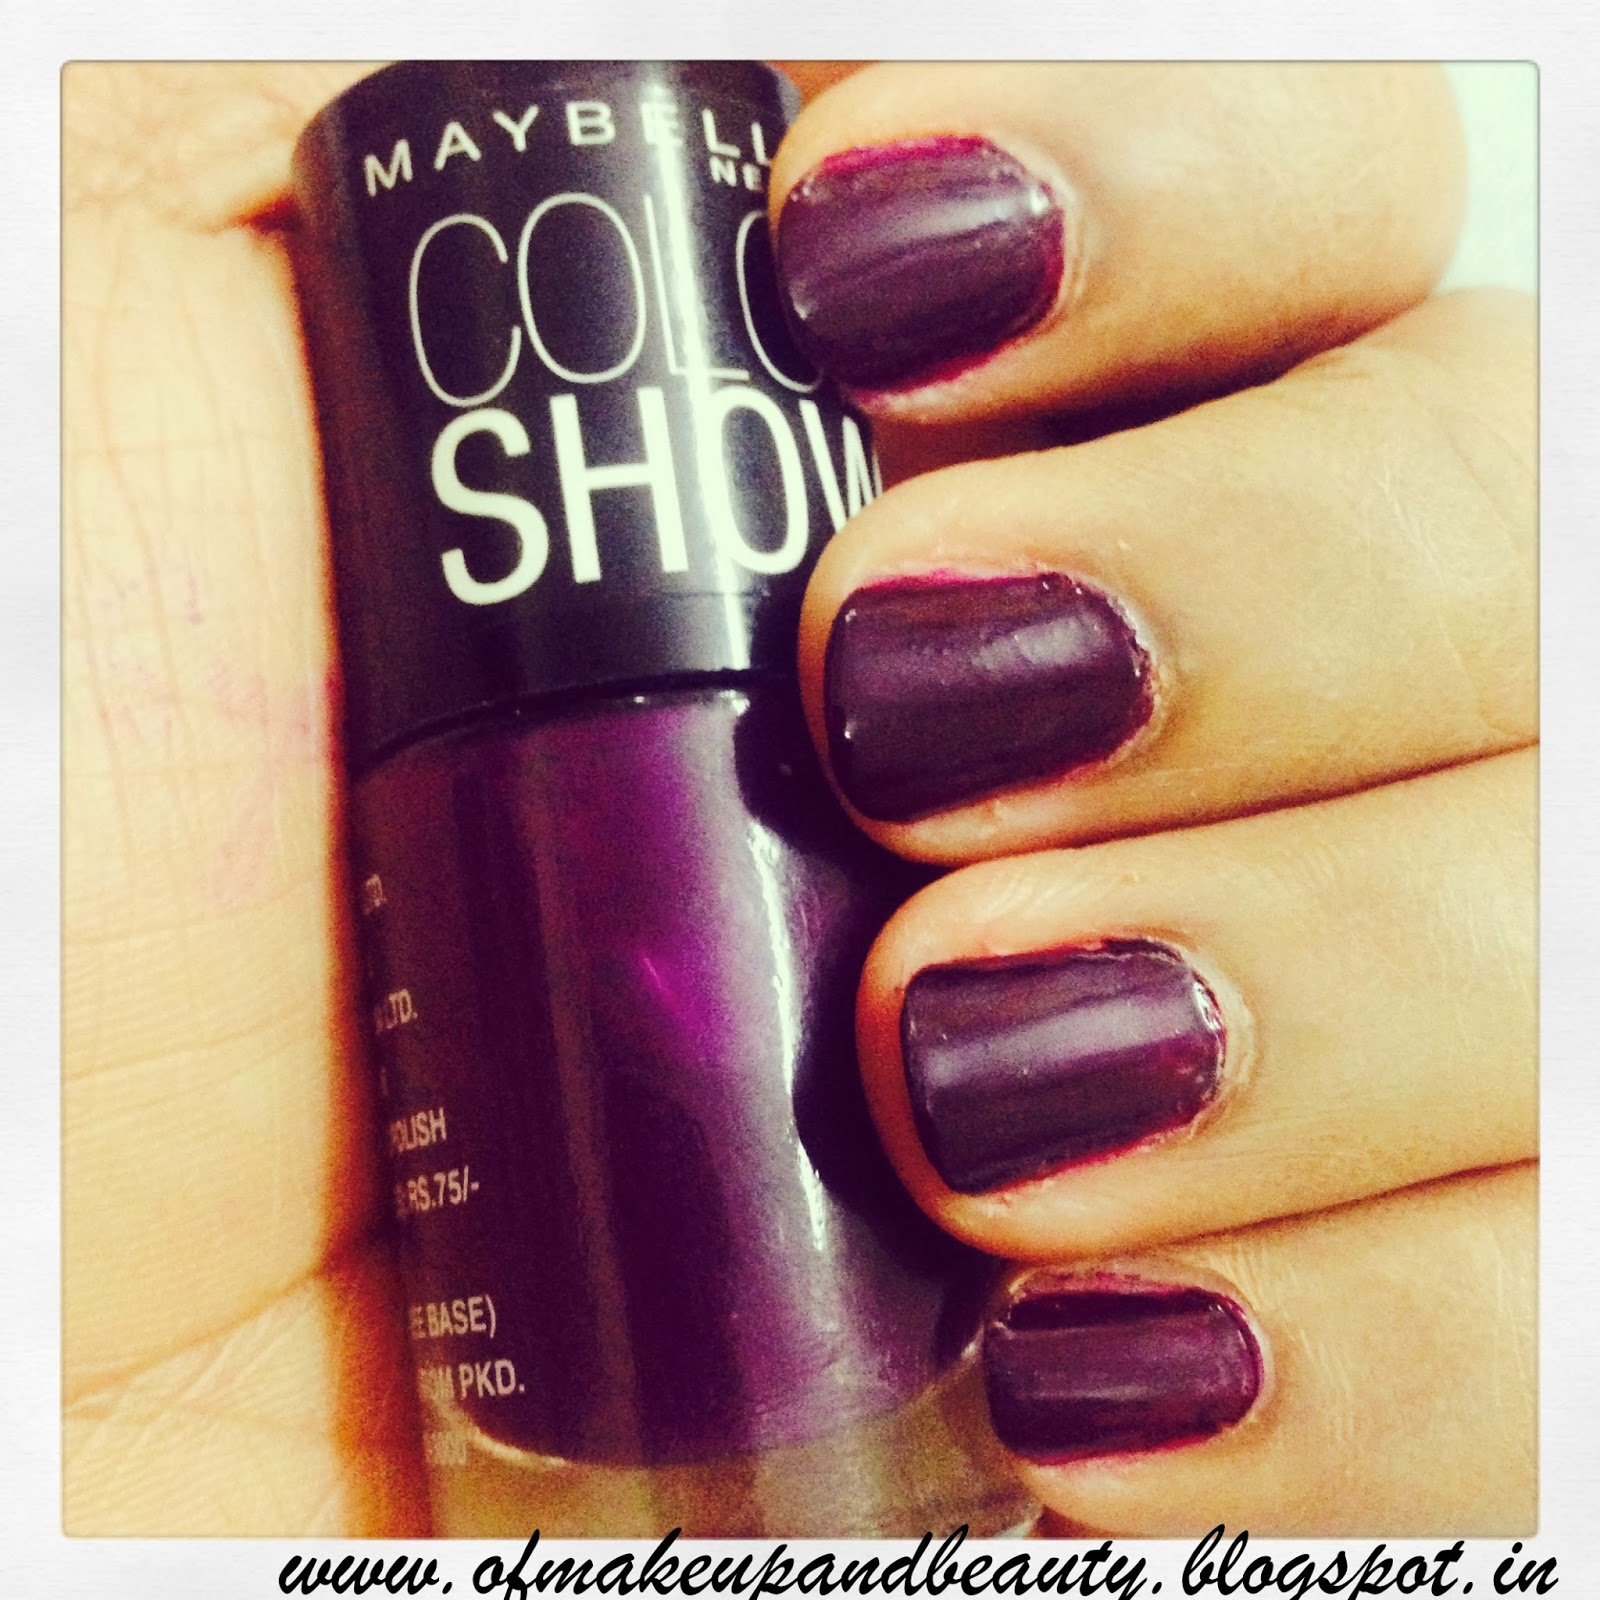 Maybelline Color Show Nail Polish - Crazy Berry !! Review and NOTD ♥